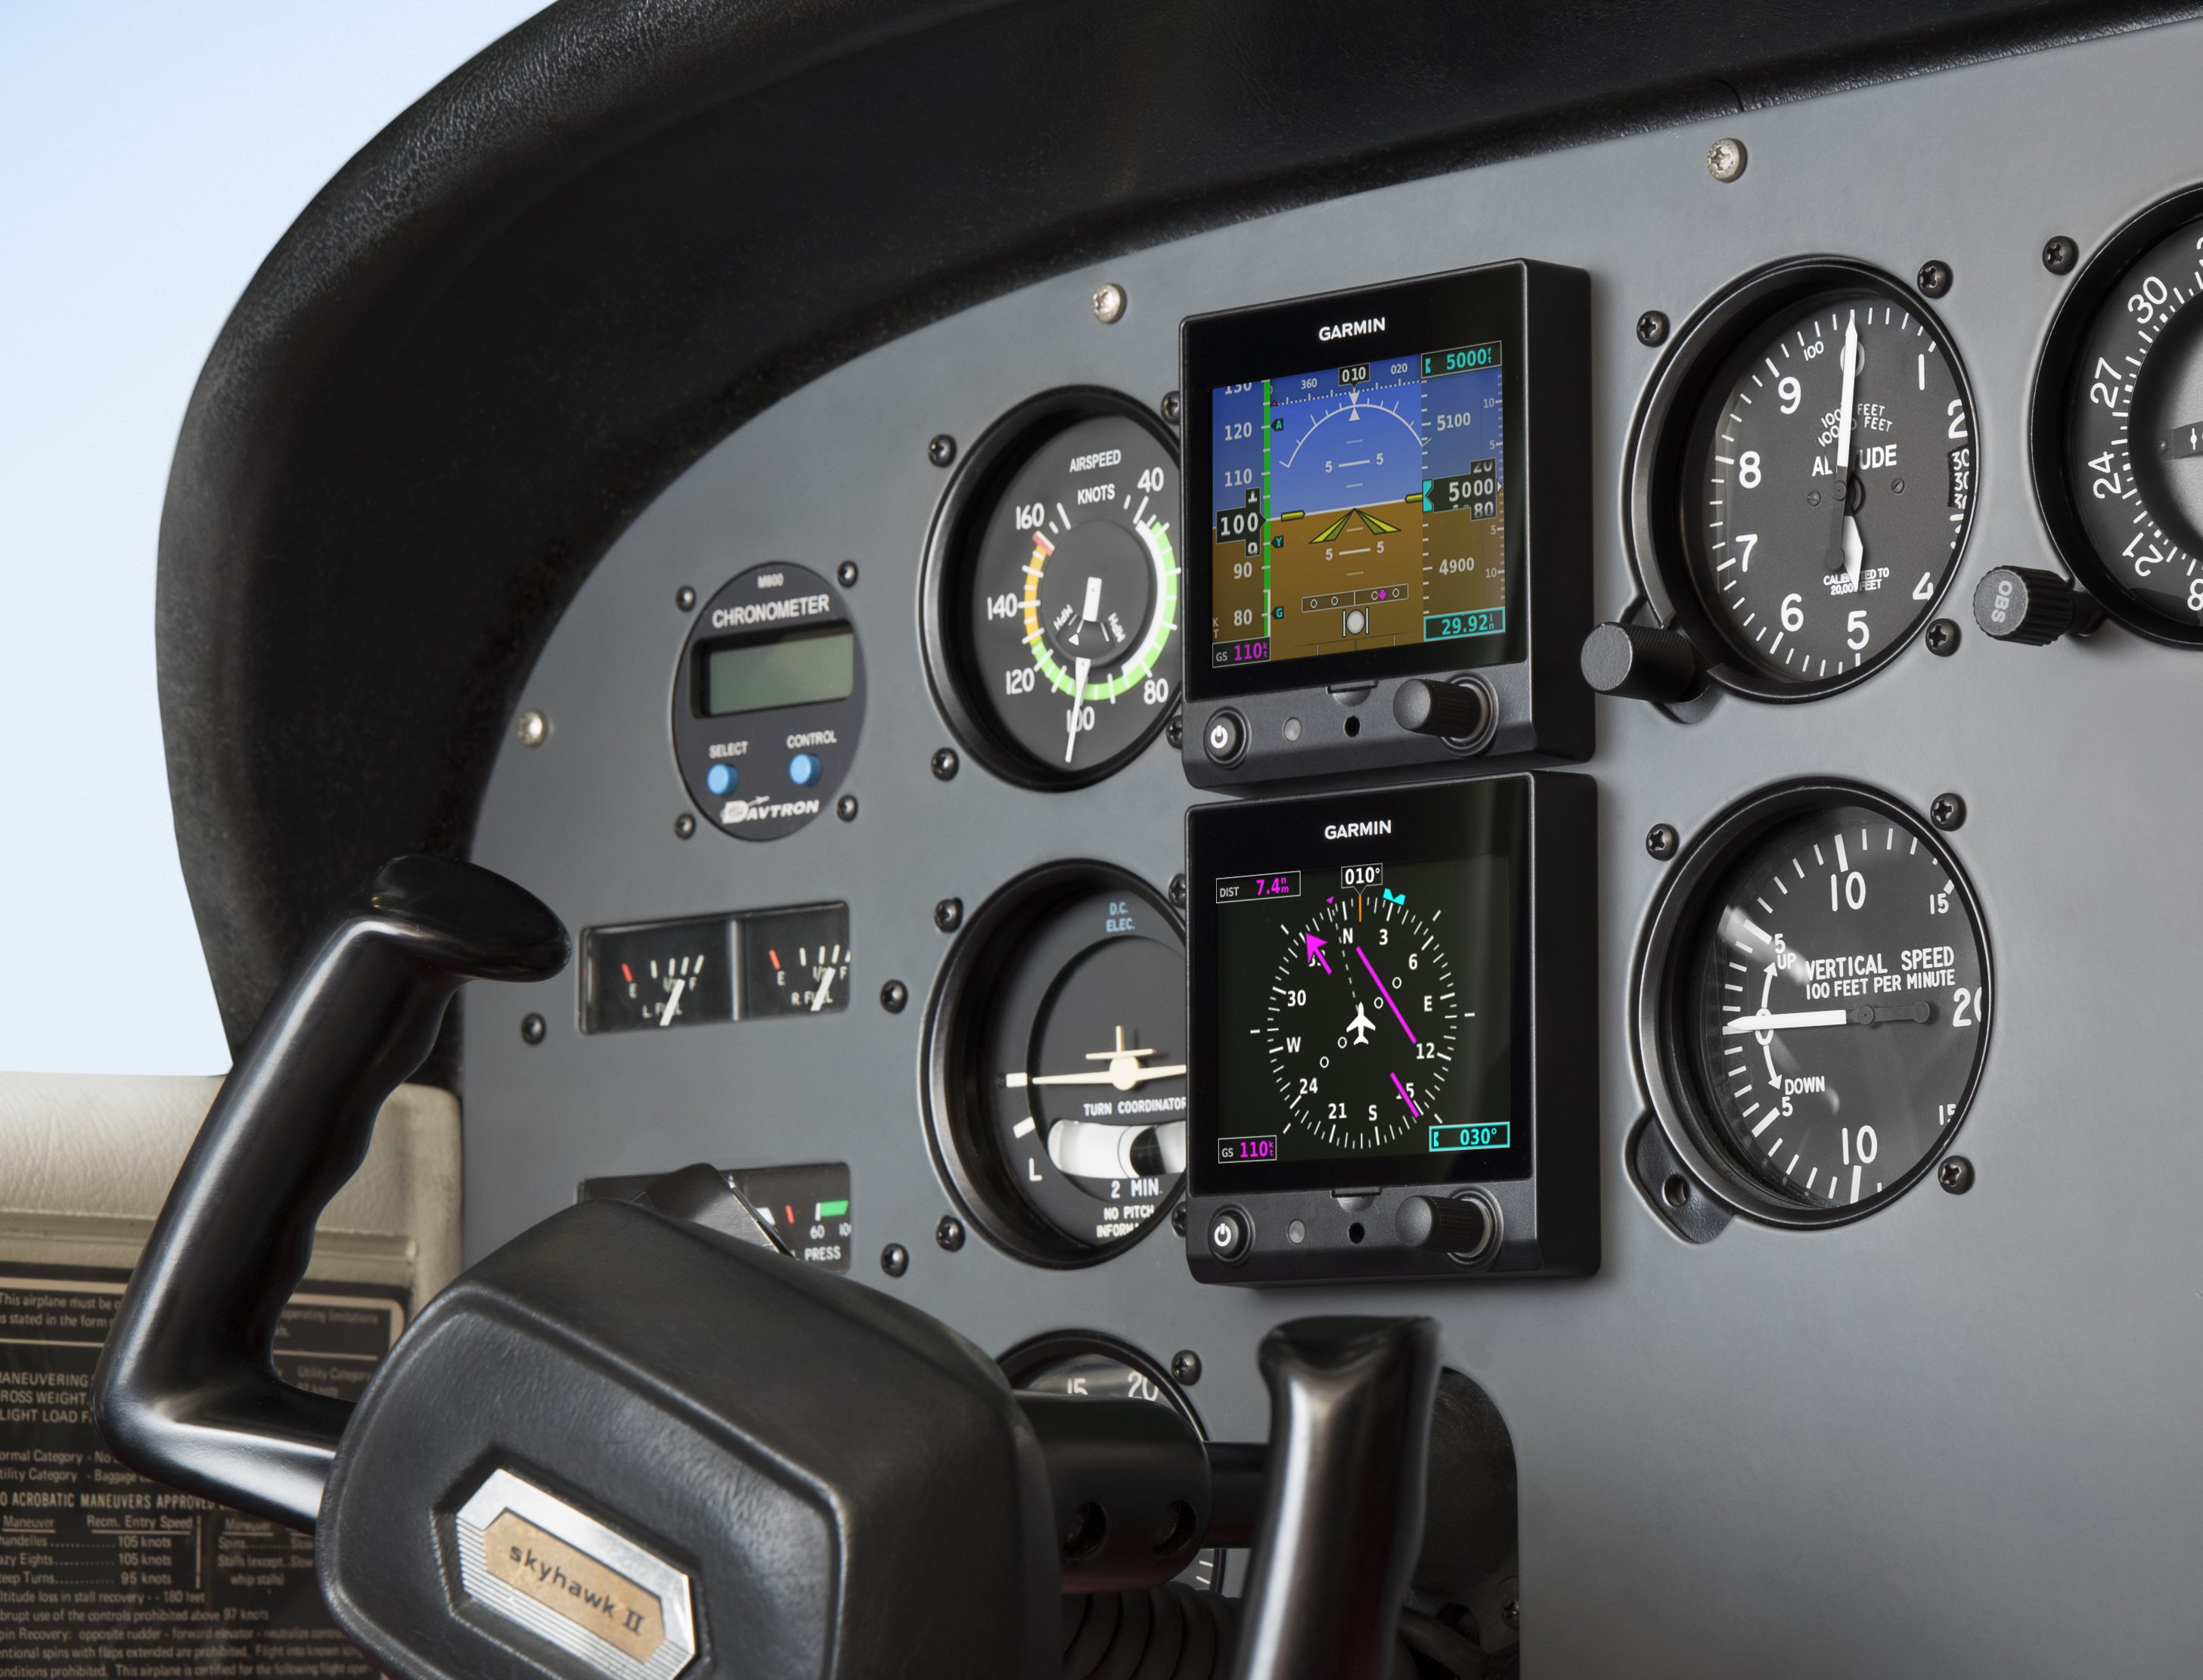 Garmin G5 Certified as Replacement for Directional Gyro